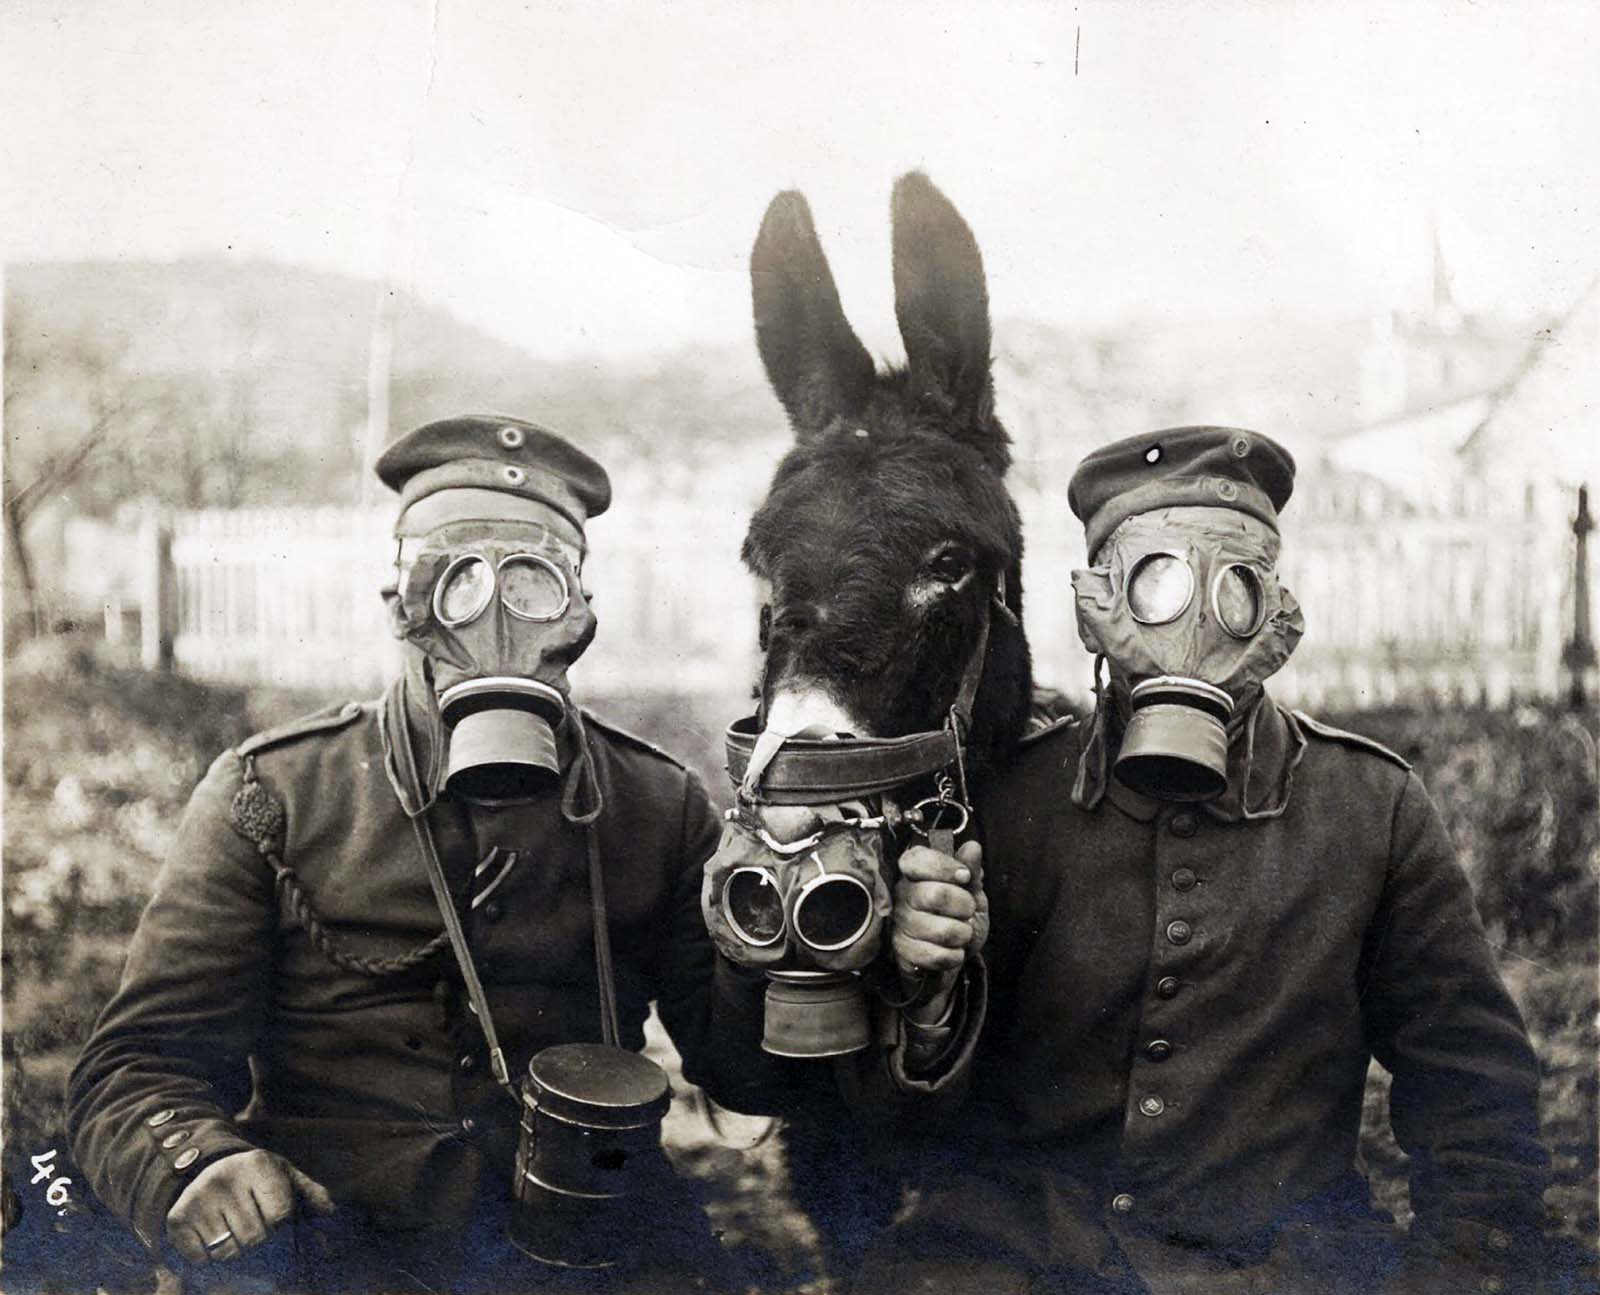 Two German soldiers and their mule wearing gas masks in World War One, 1916